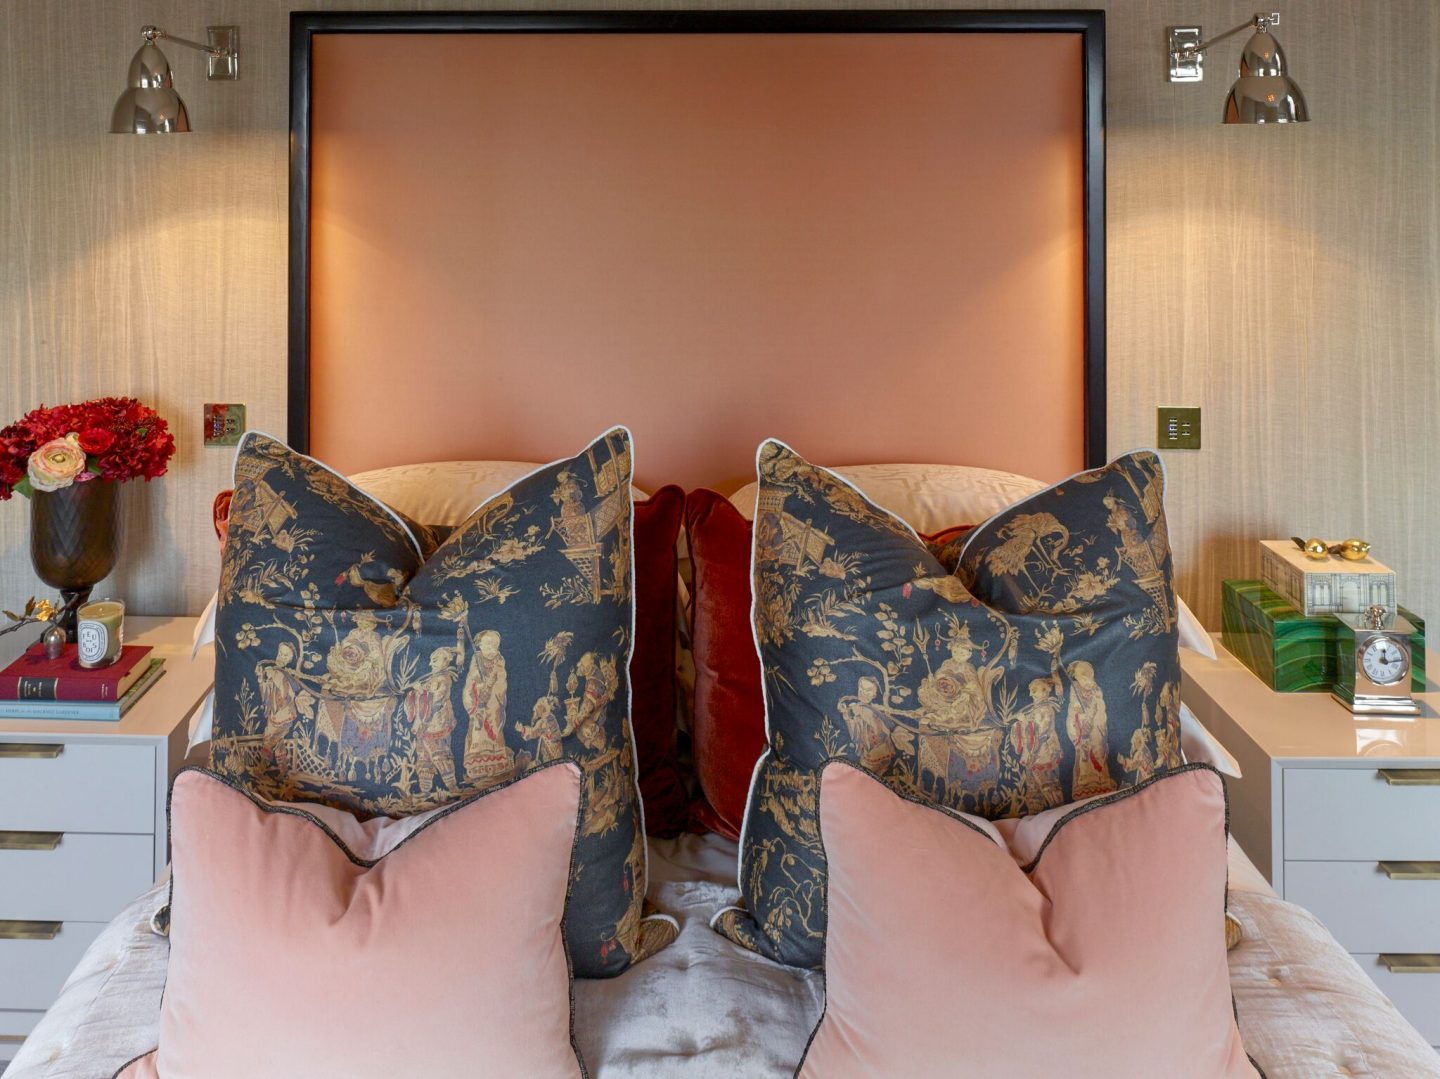 Peach headboard in in London apartment. Colorful Classic Decor in London Inspired by 'Out of Africa' - come see more from Studio L London! #britishcolornial #livingroom #pinkandgreen #elegantdecor #Londonapartment #interiordesigninspiration